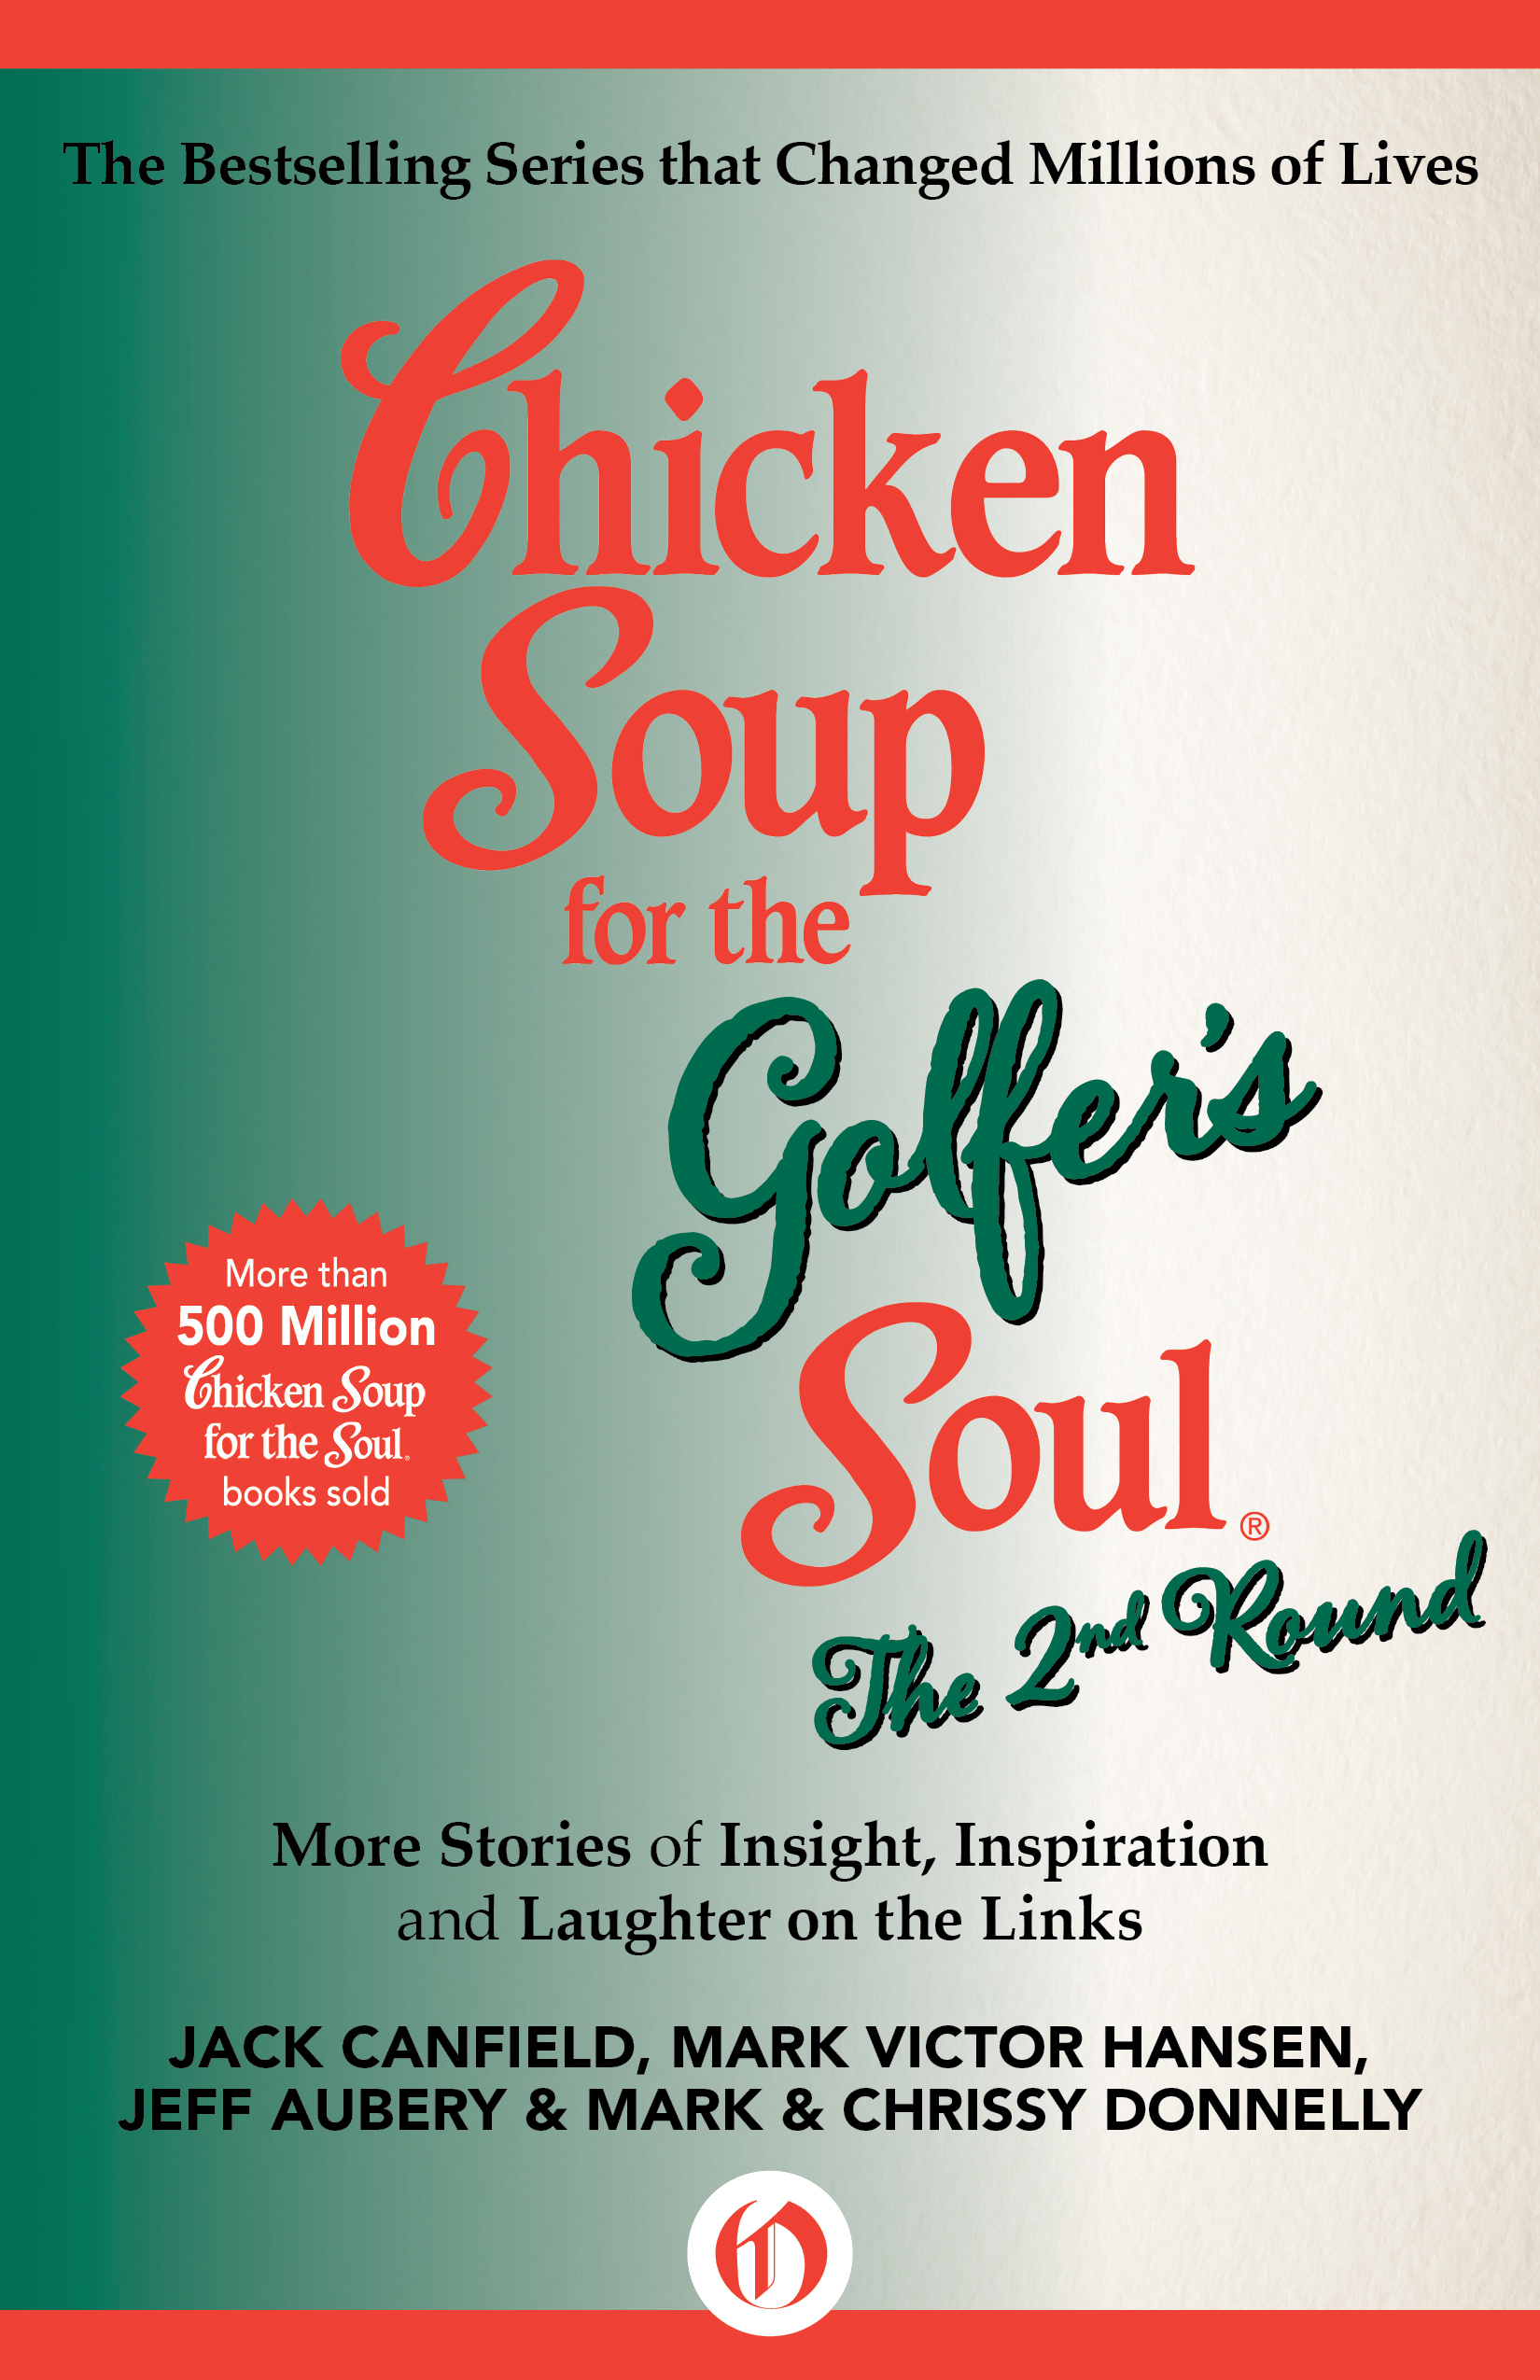 Chicken Soup for the Golfer's Soul The 2nd Round